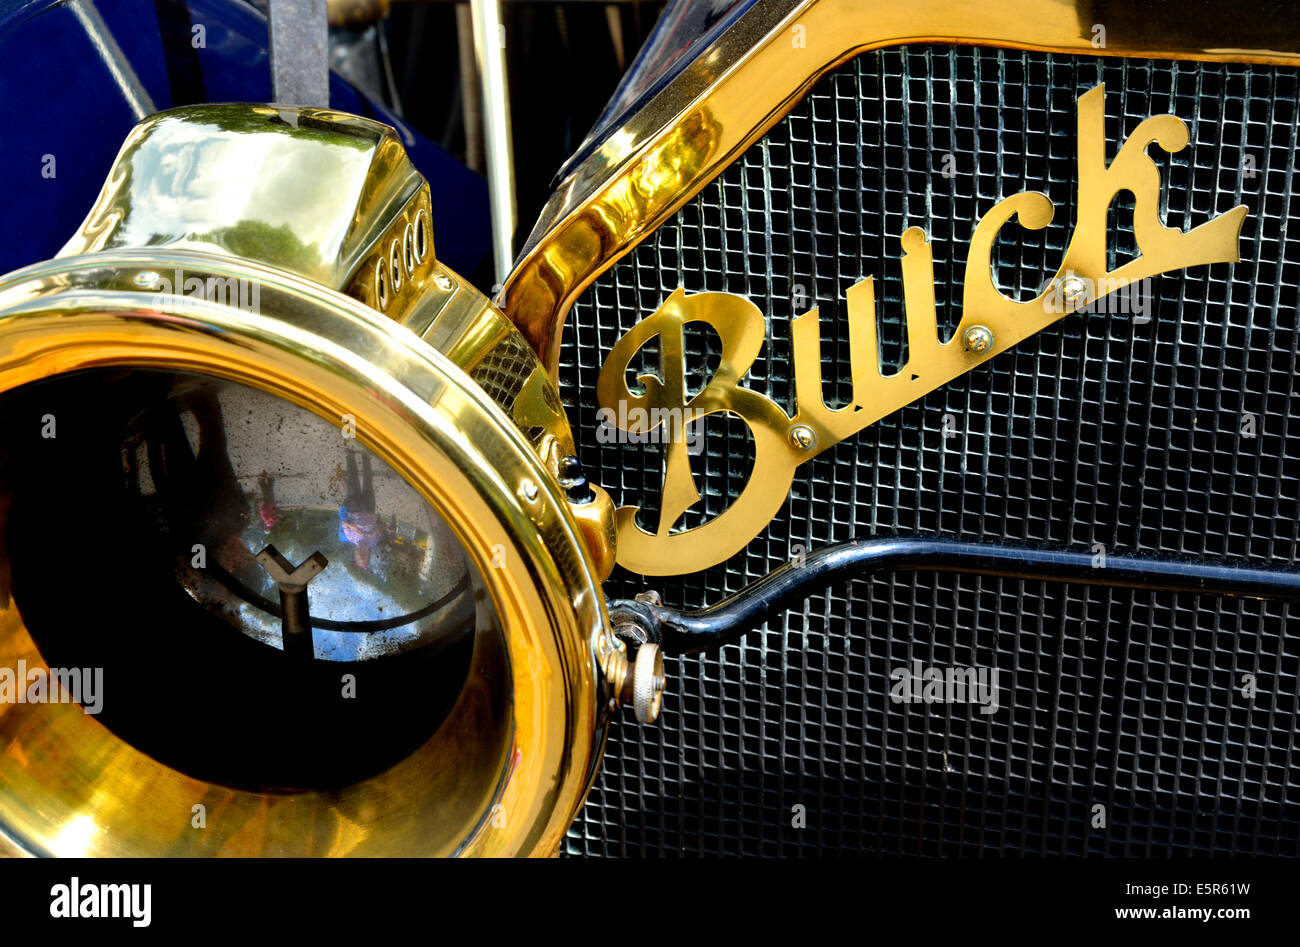 1910 vintage Buick car. Detail of front grill and headlamp - Stock Image